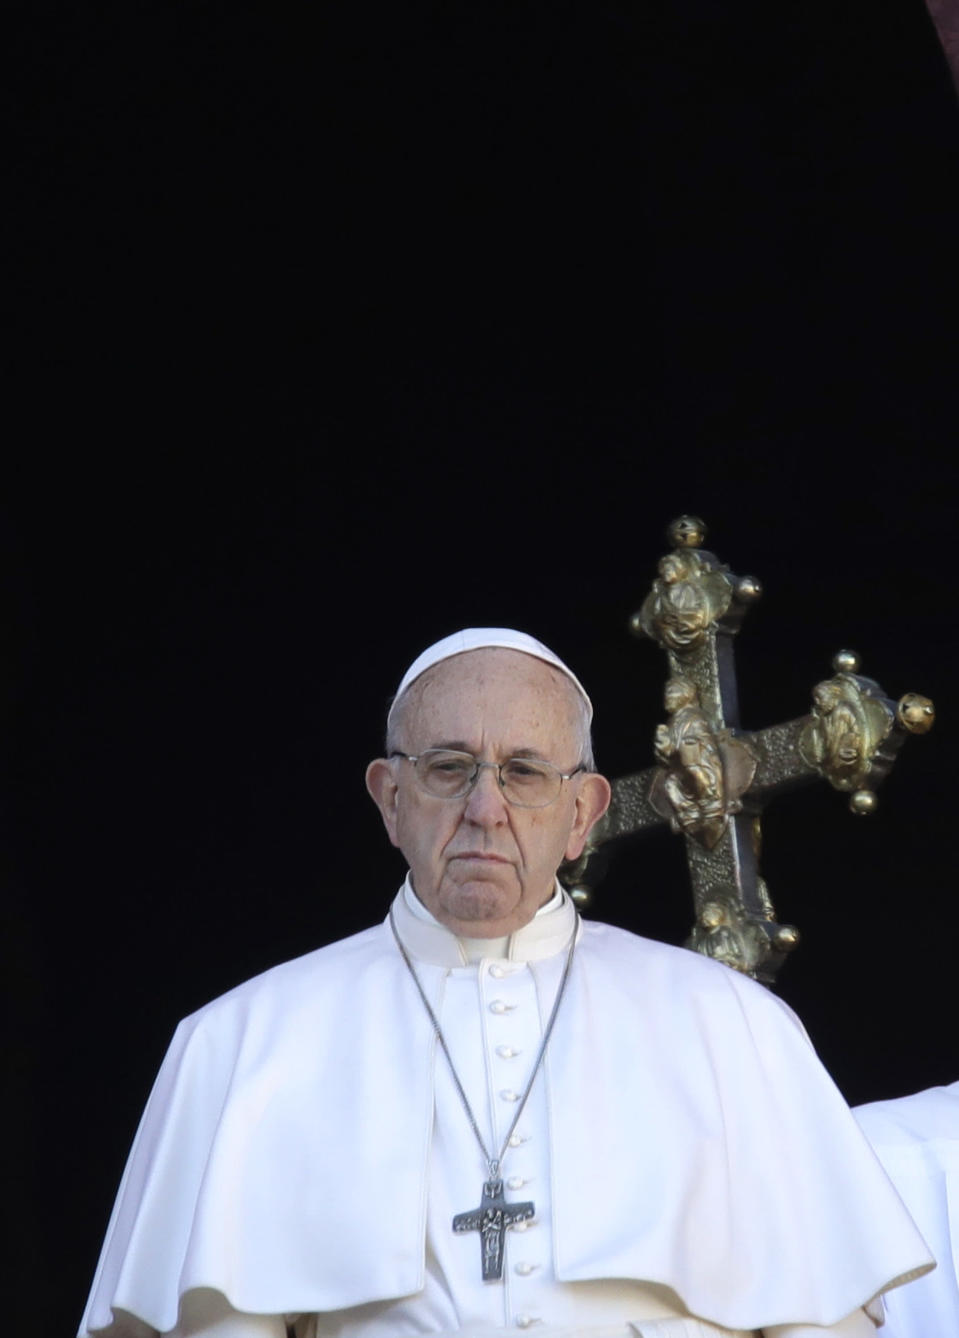 Pope Francis looks at St. Peter's Square after the Urbi et Orbi (Latin for 'to the city and to the world' ) Christmas' day blessing from the main balcony of St. Peter's Basilica at the Vatican, Tuesday, Dec. 25, 2018. (AP Photo/Alessandra Tarantino)